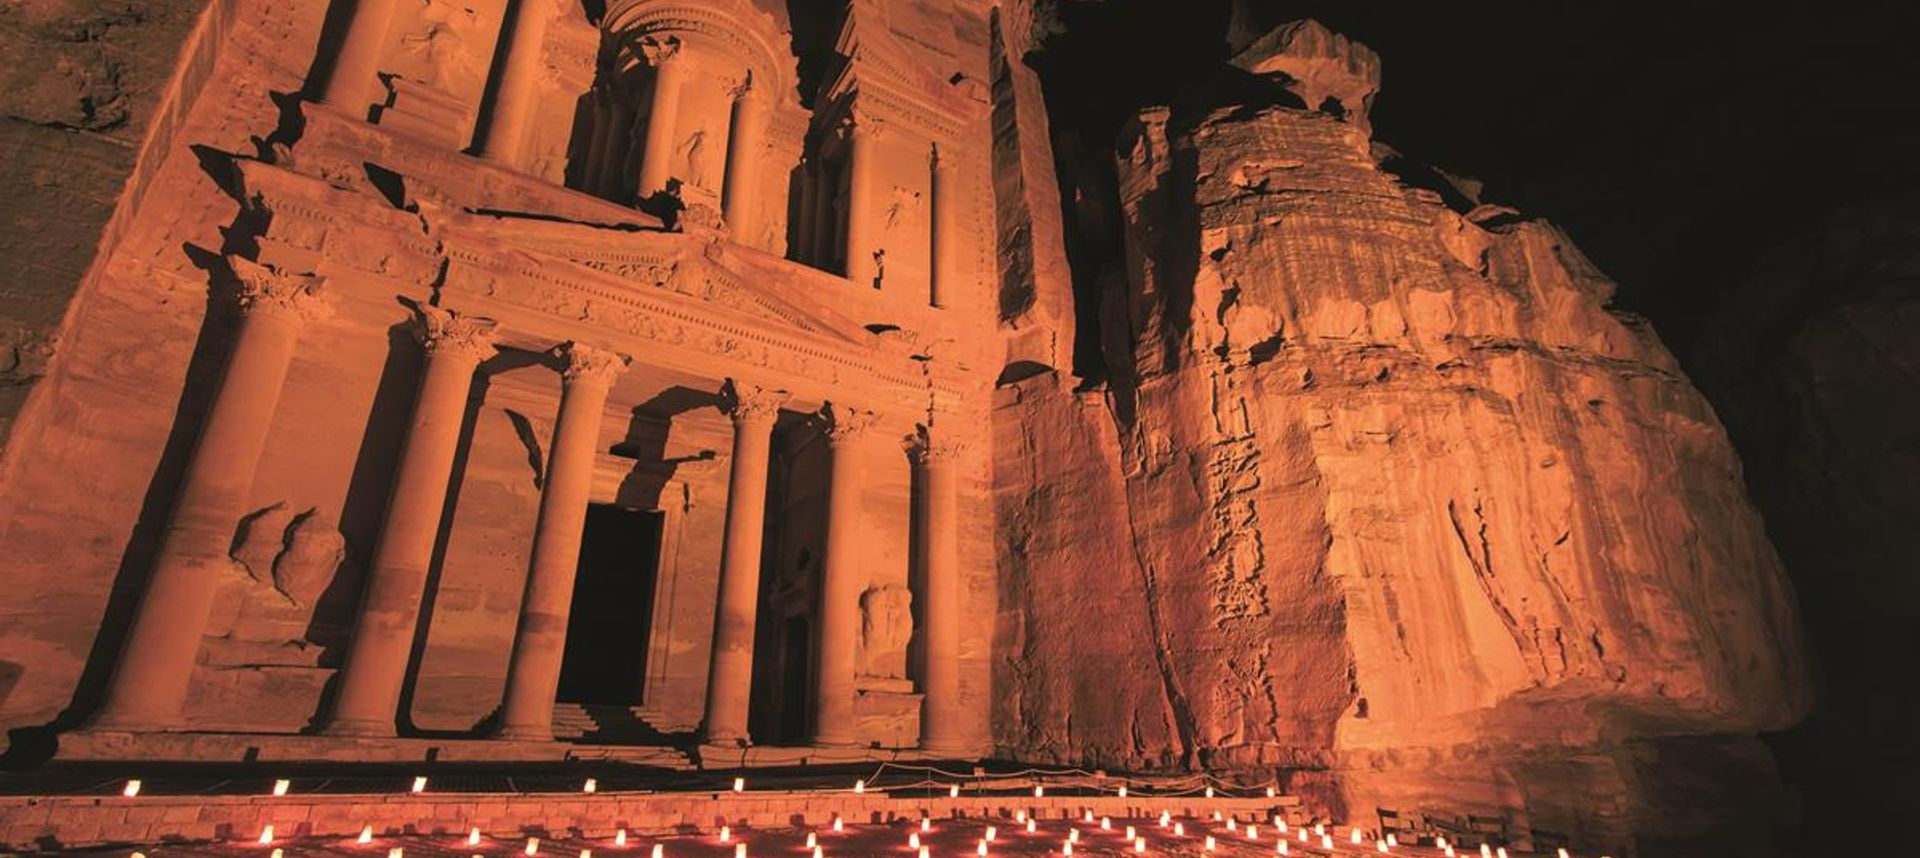 The Treasury at Petra Jordan lit at night during the night walk (dreamstime.com)